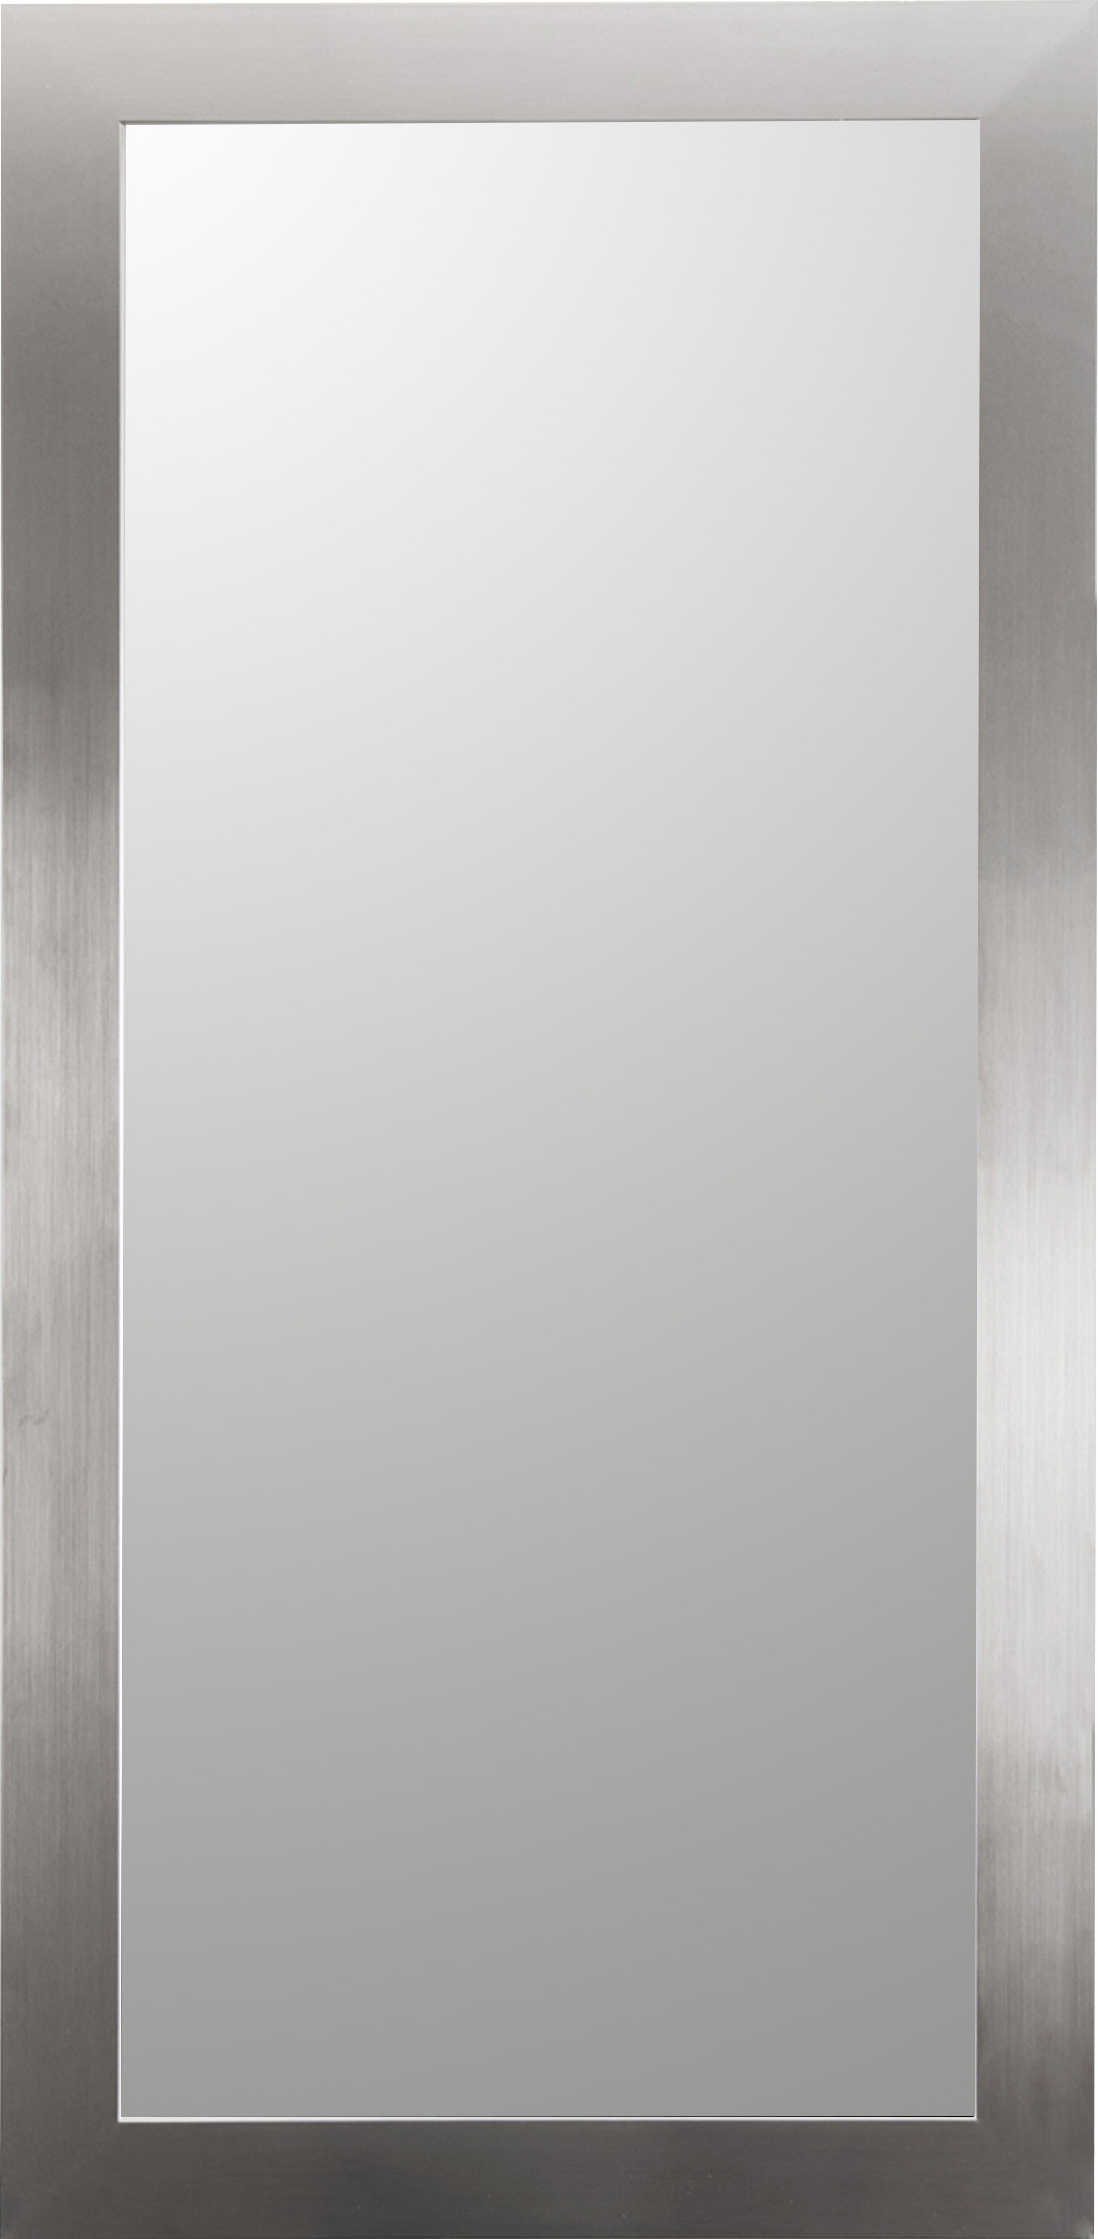 Full Body Floor Modern & Contemporary Full Length Mirror Inside 2020 Sartain Modern & Contemporary Wall Mirrors (View 7 of 20)